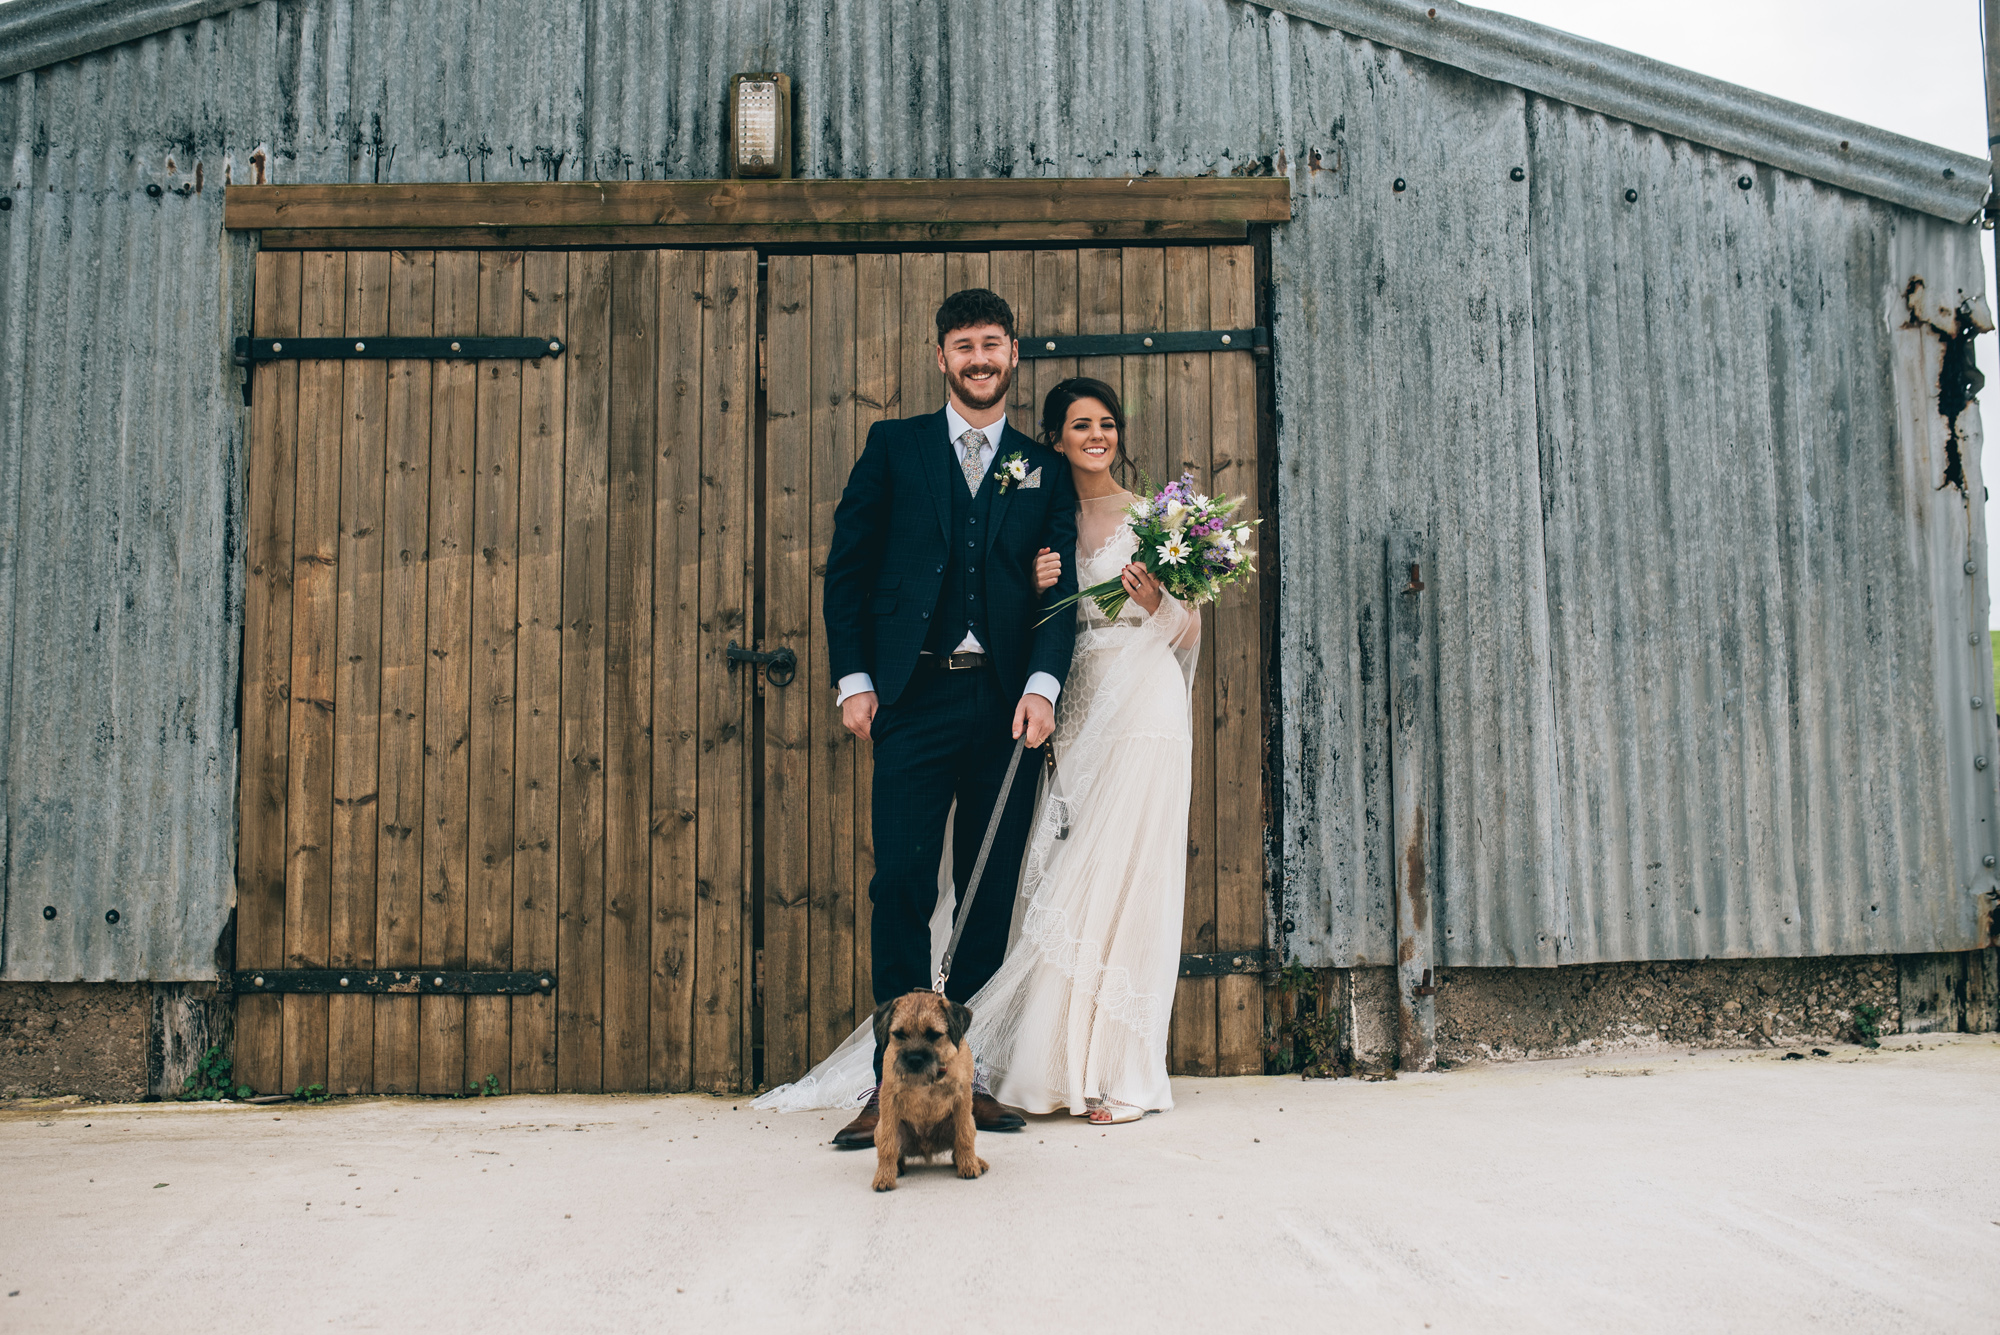 Kate-Beaumont-Sheffield-Lucy-Bohemian-Lace-Dress-Barn-Wedding-Cumbria-19.jpg